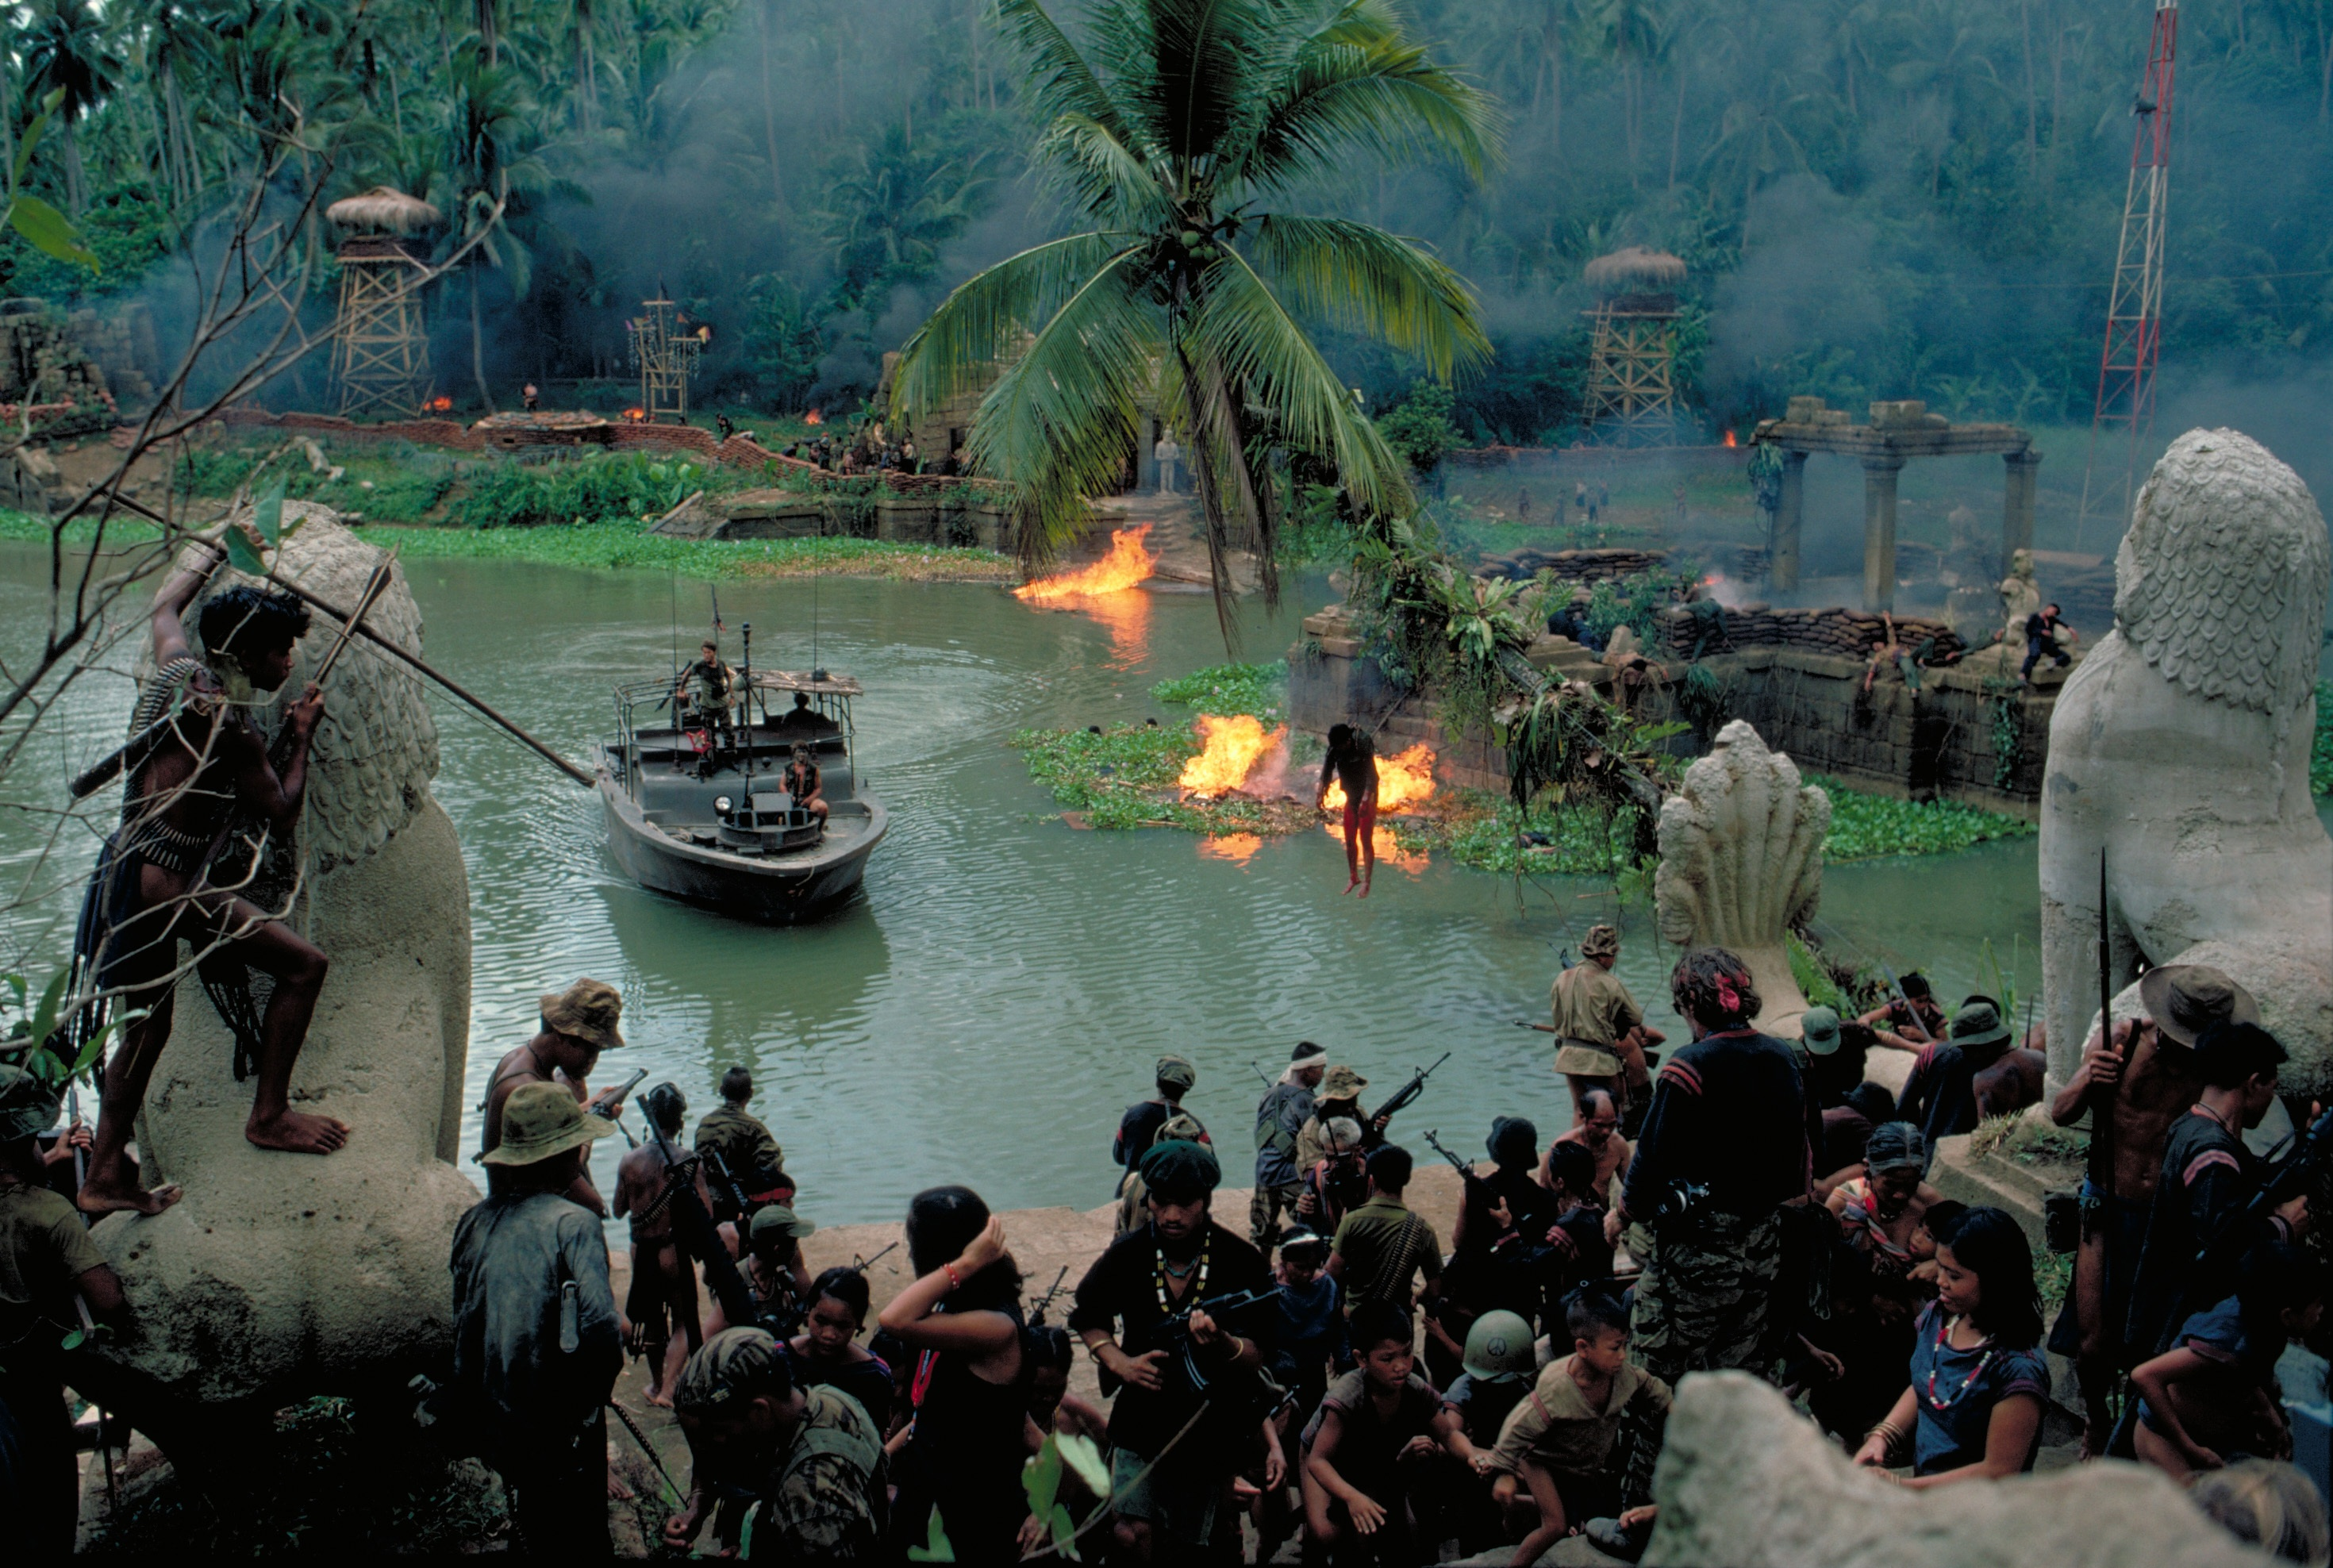 History of the World According to the Movies: Part 79 – The Vietnam War